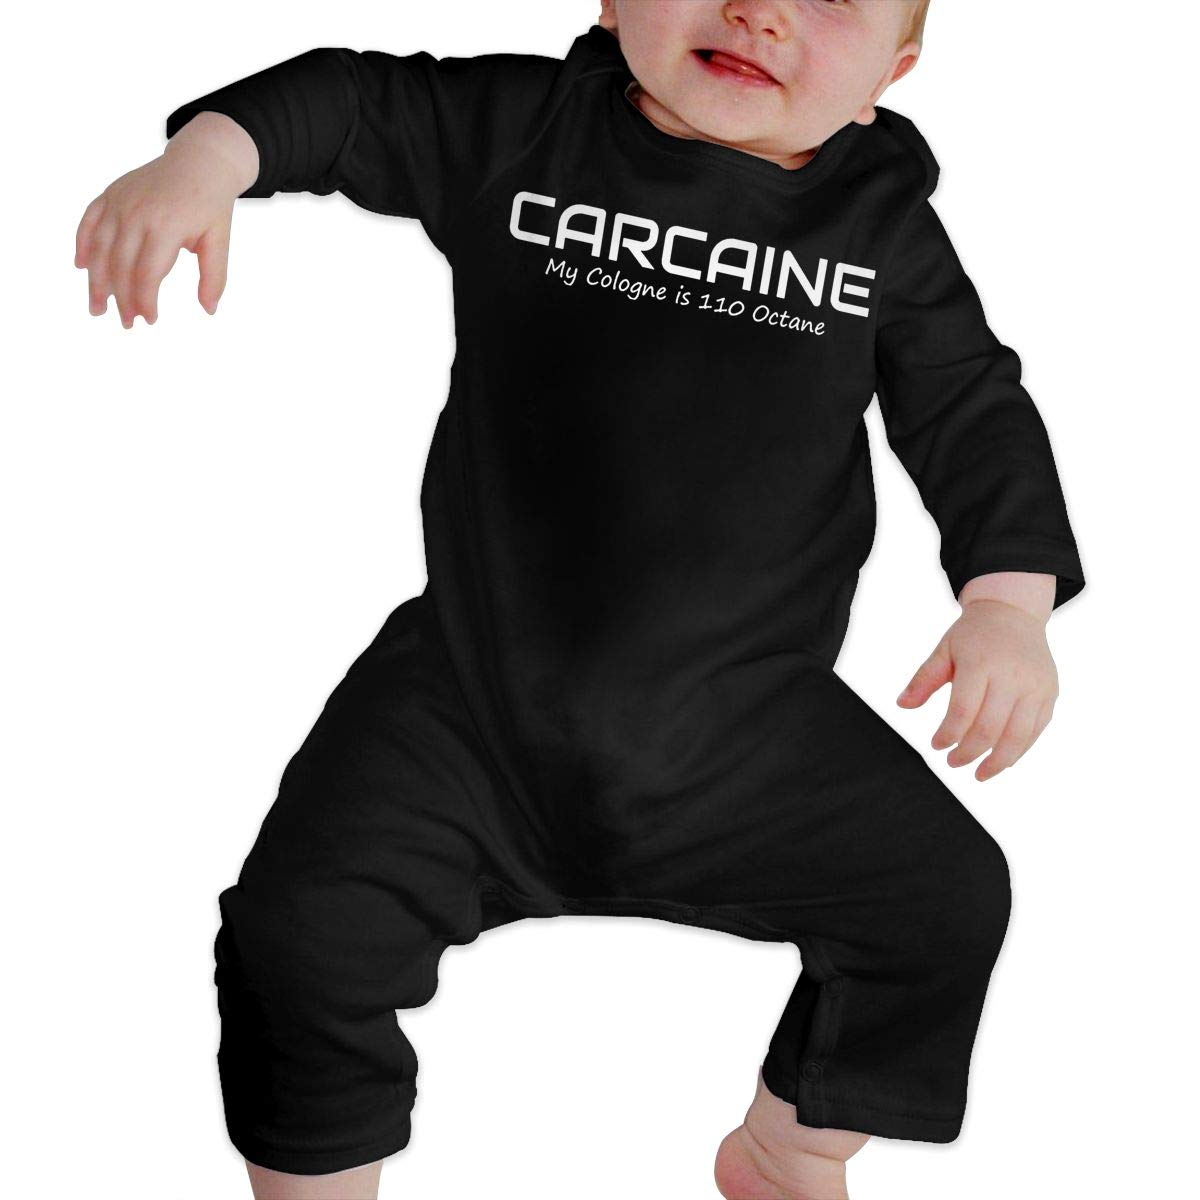 Fional Infant Long Sleeve Romper Carcaine My Cologne Newborn Babys 0-24M Organic Cotton Jumpsuit Outfit